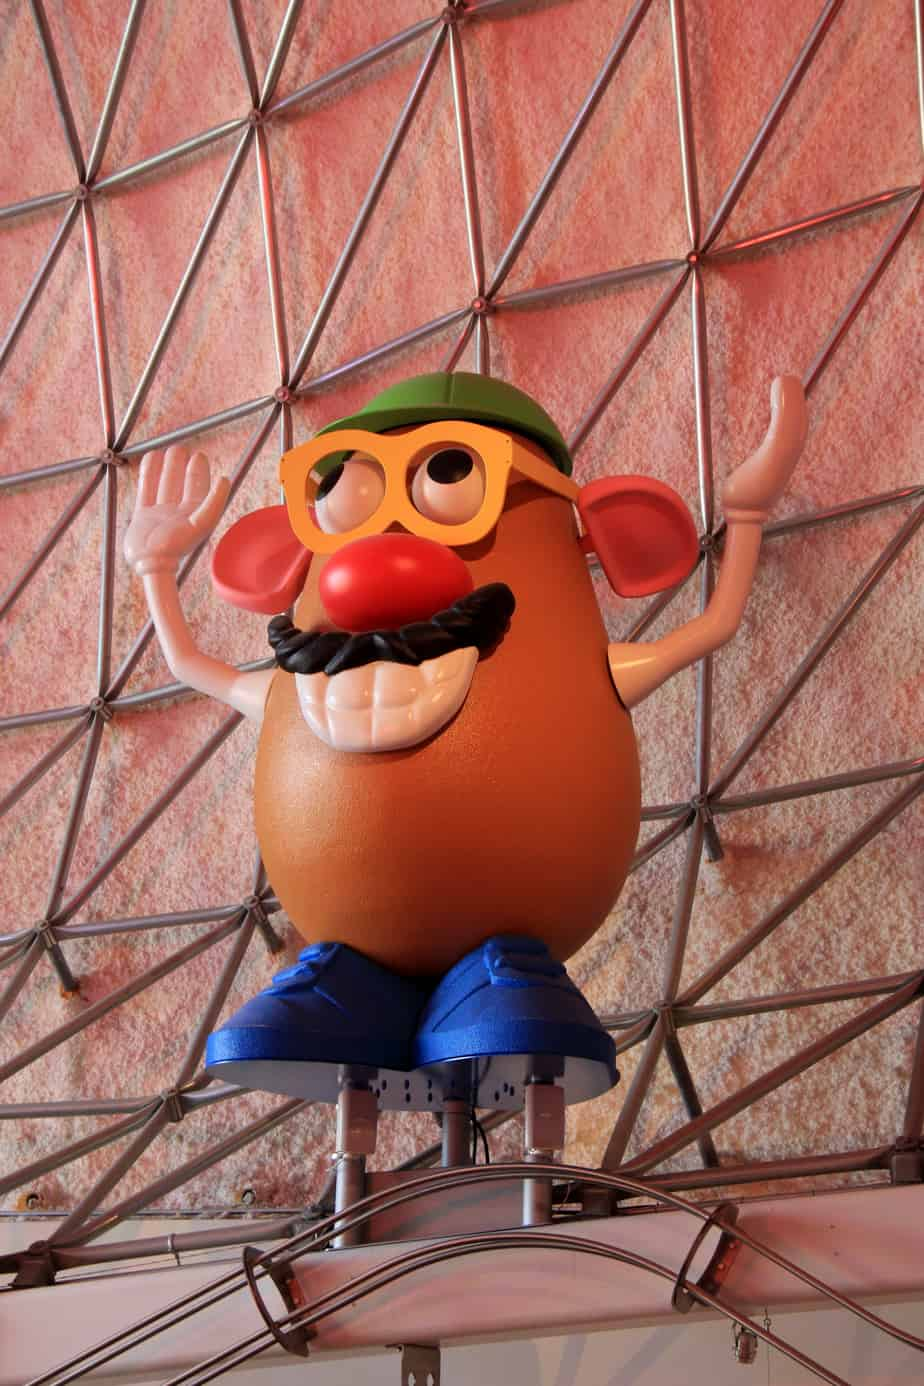 Mr. Potato Head National Museum of Play Rochester